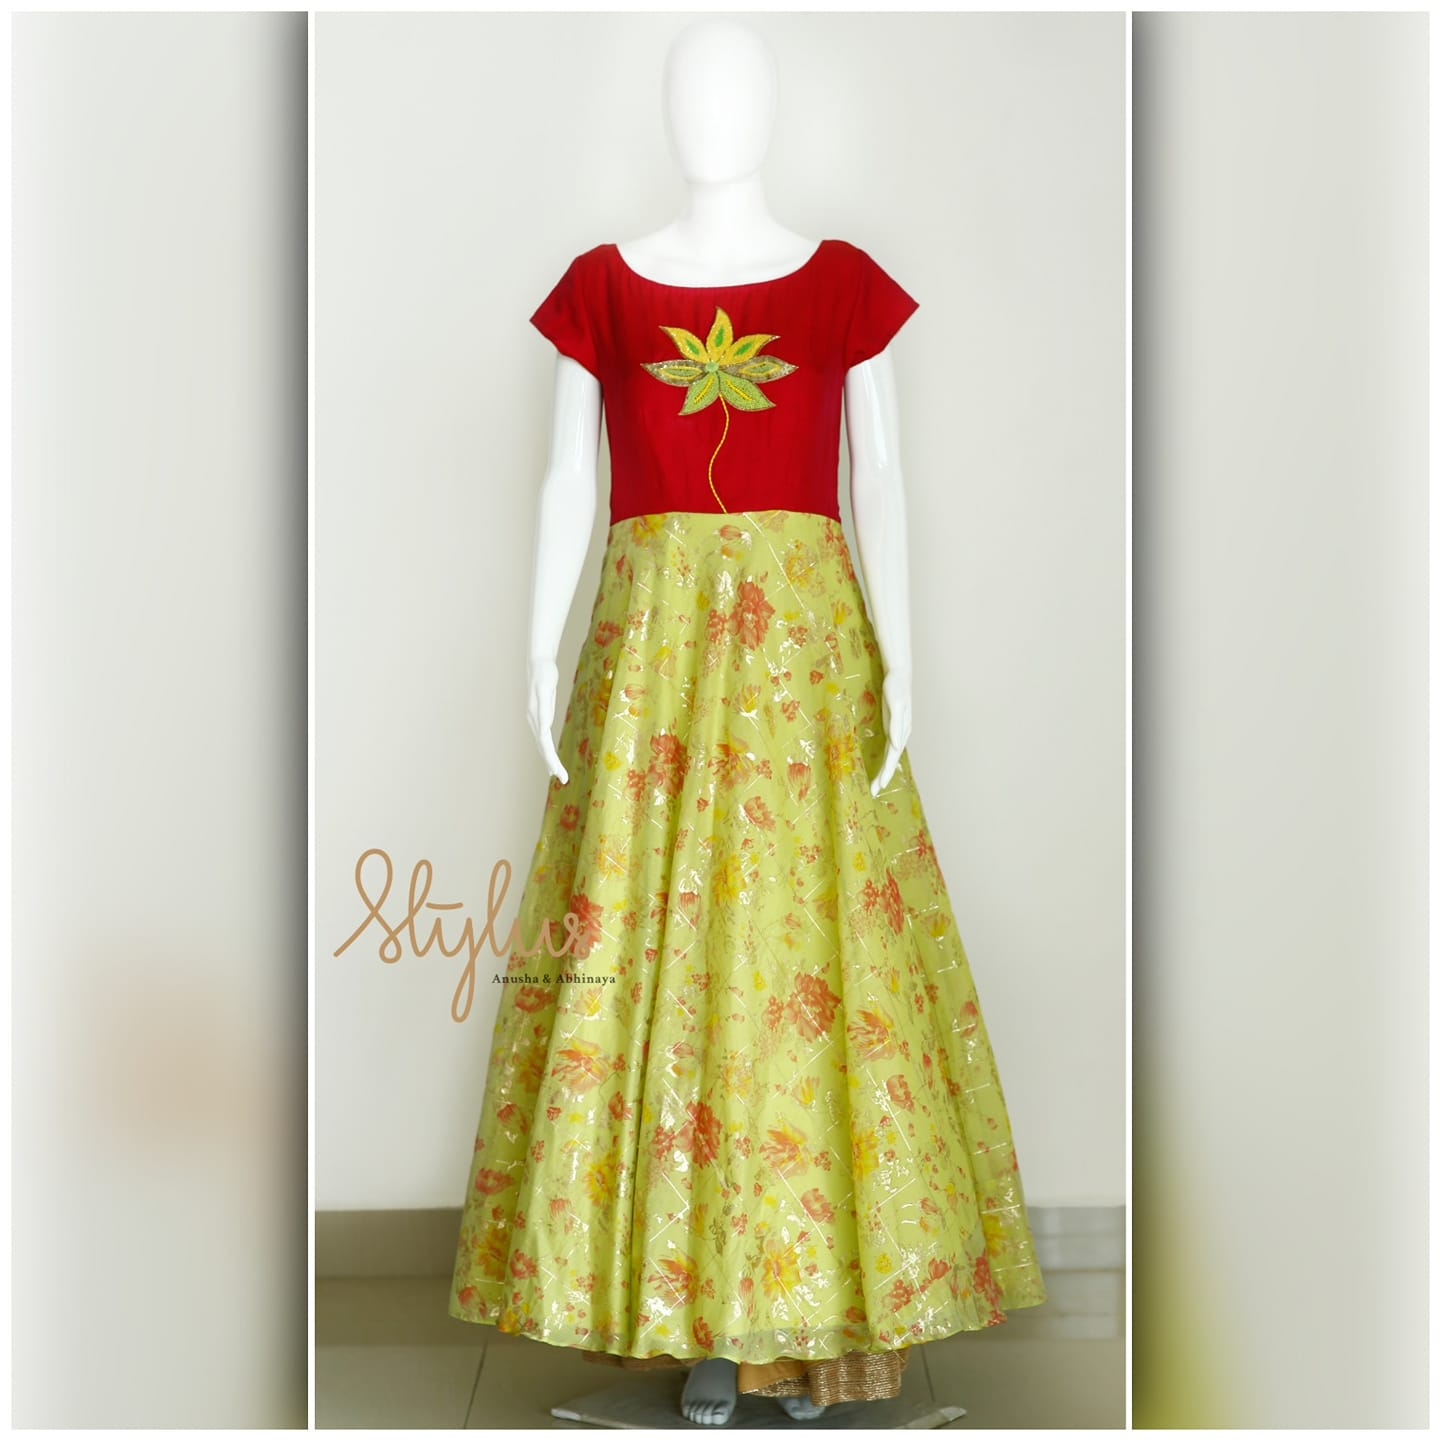 Glare with a flare!